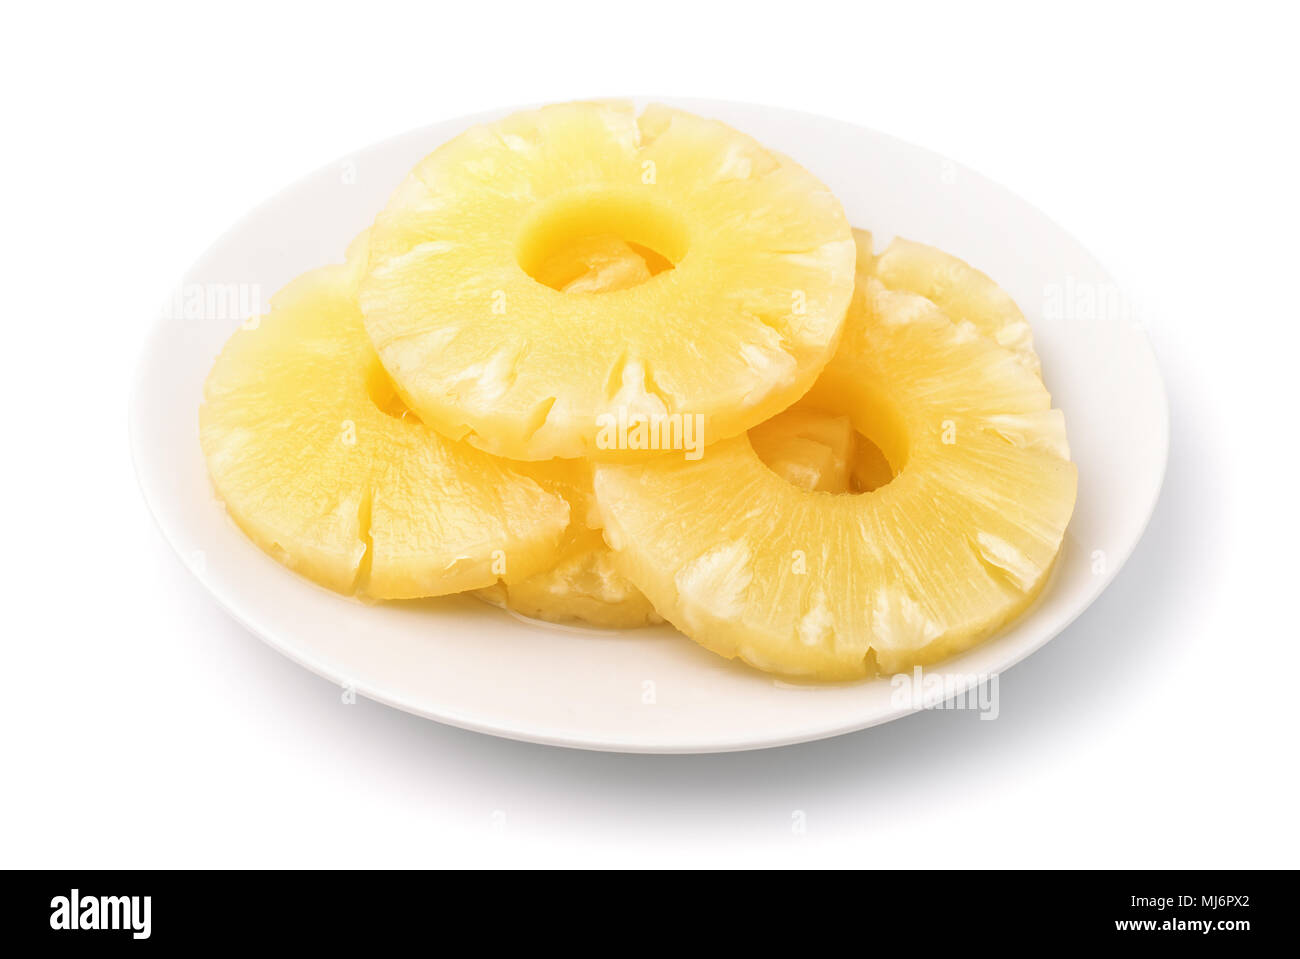 Canned pineapple slices on plate isolated on white - Stock Image